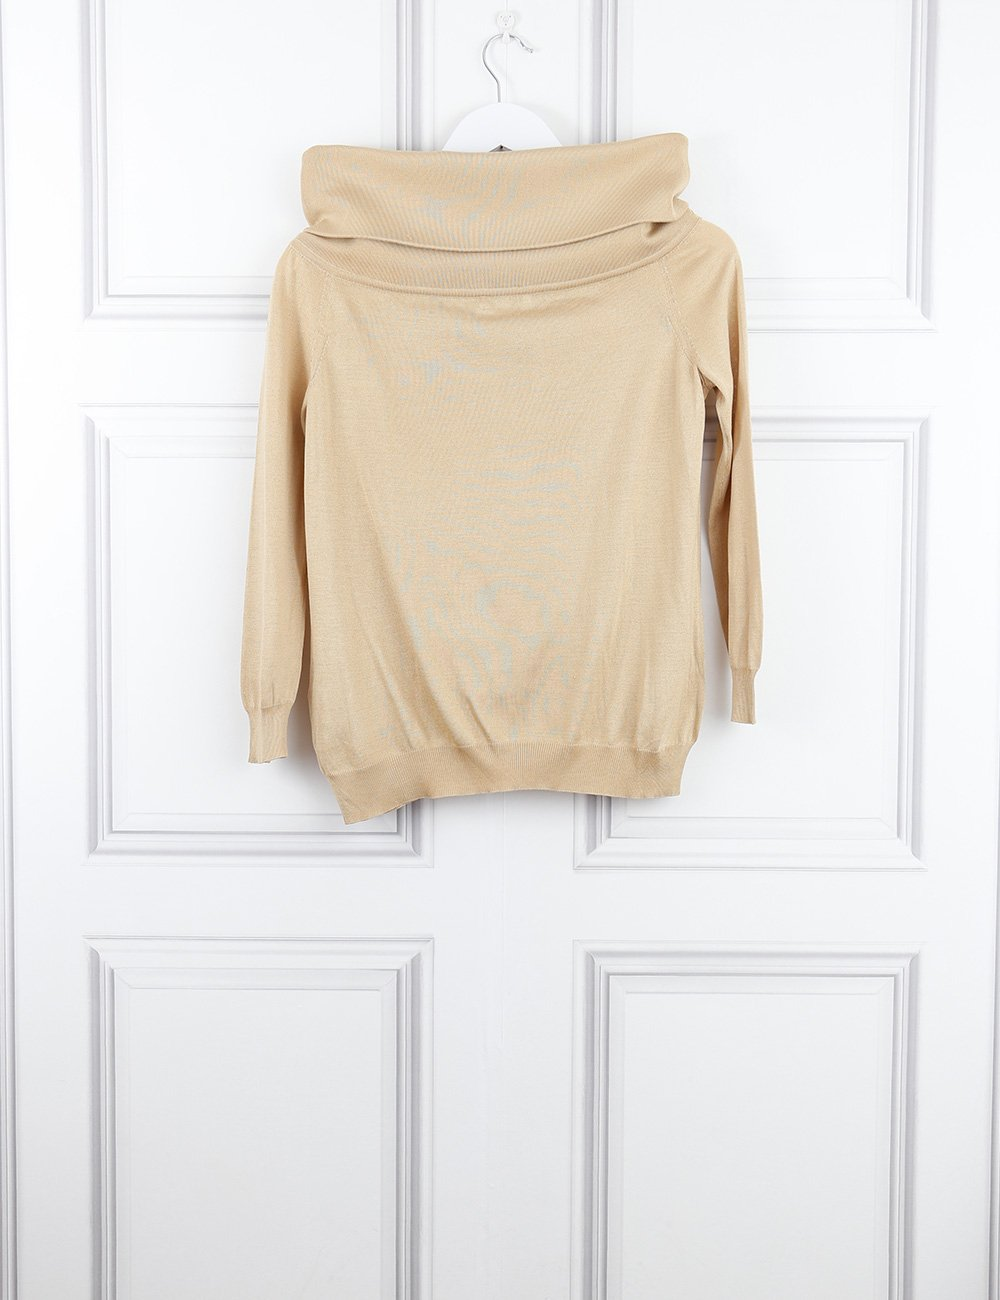 Celine gold top with wide neck 8UK- My Wardrobe Mistakes